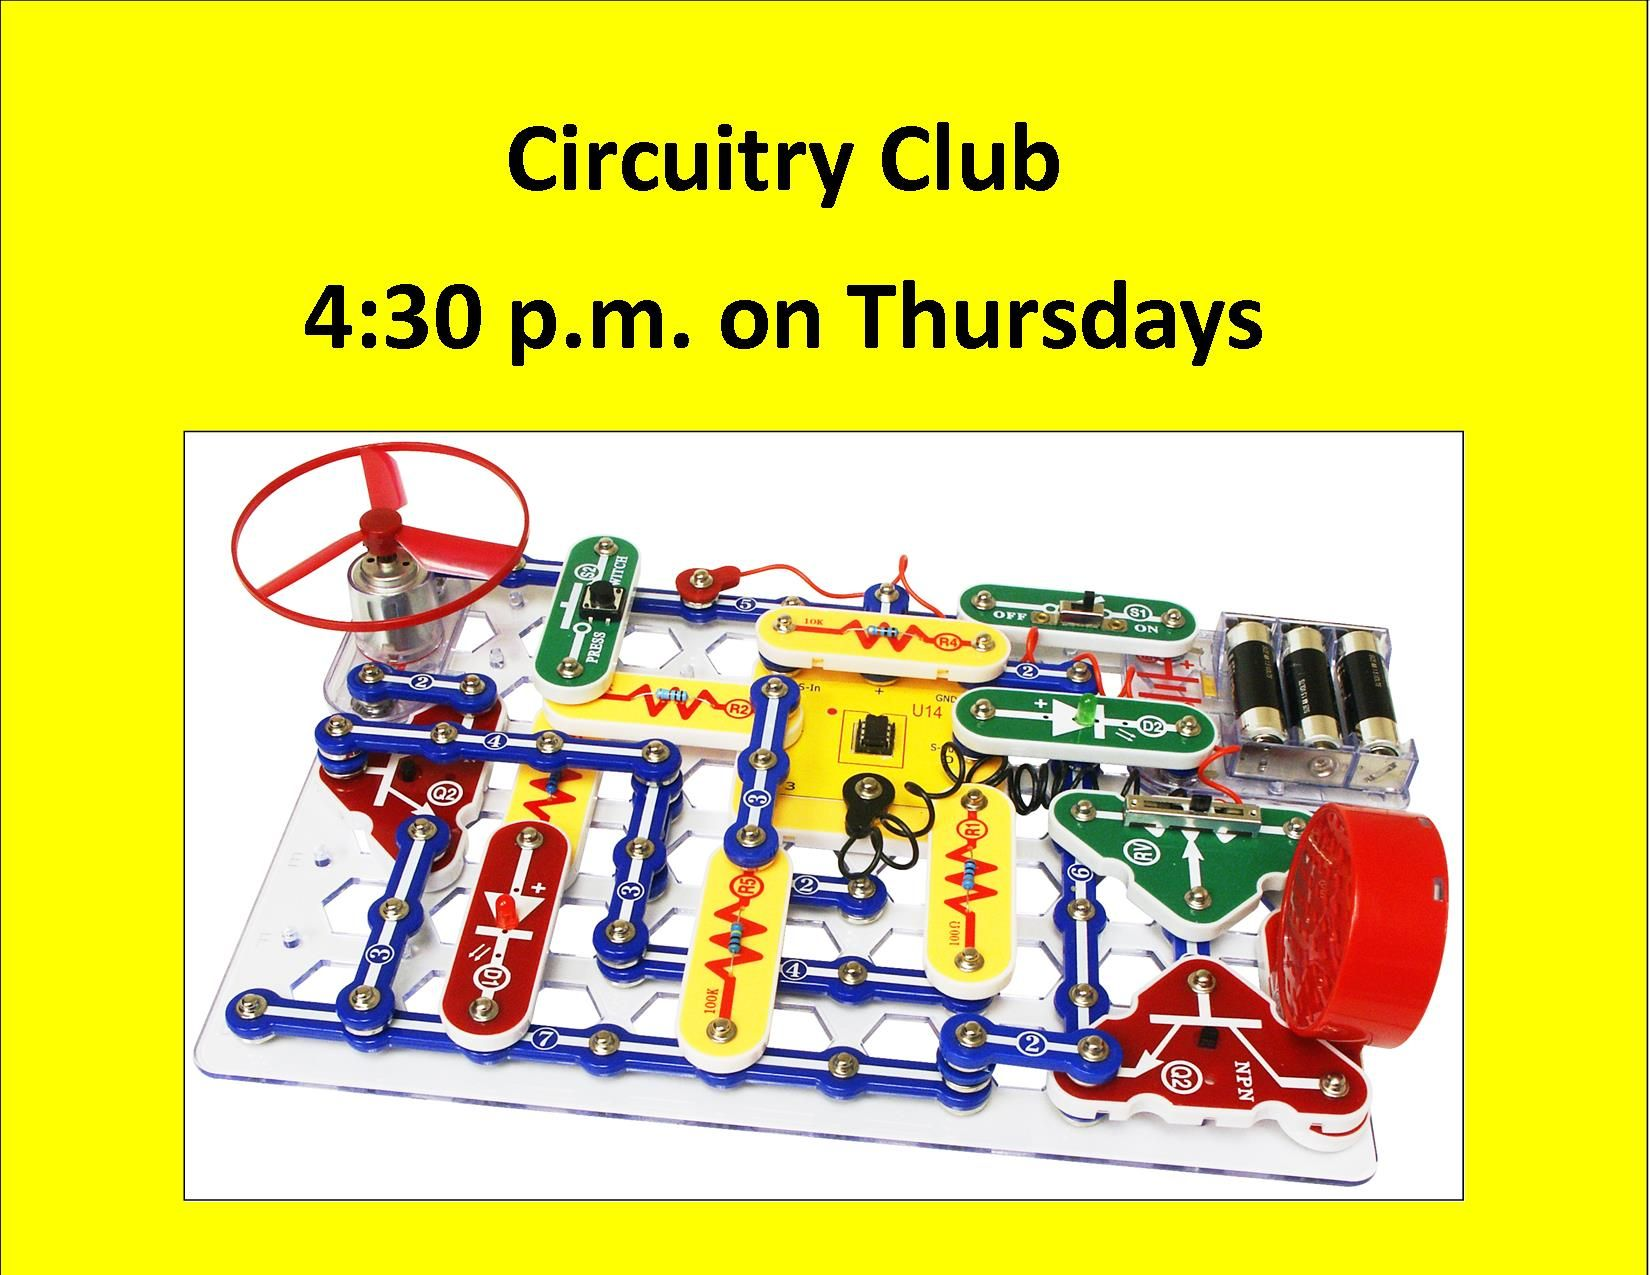 Circuitry Club Drop In And Have Some Fun With Hands On Science Circuit To Build